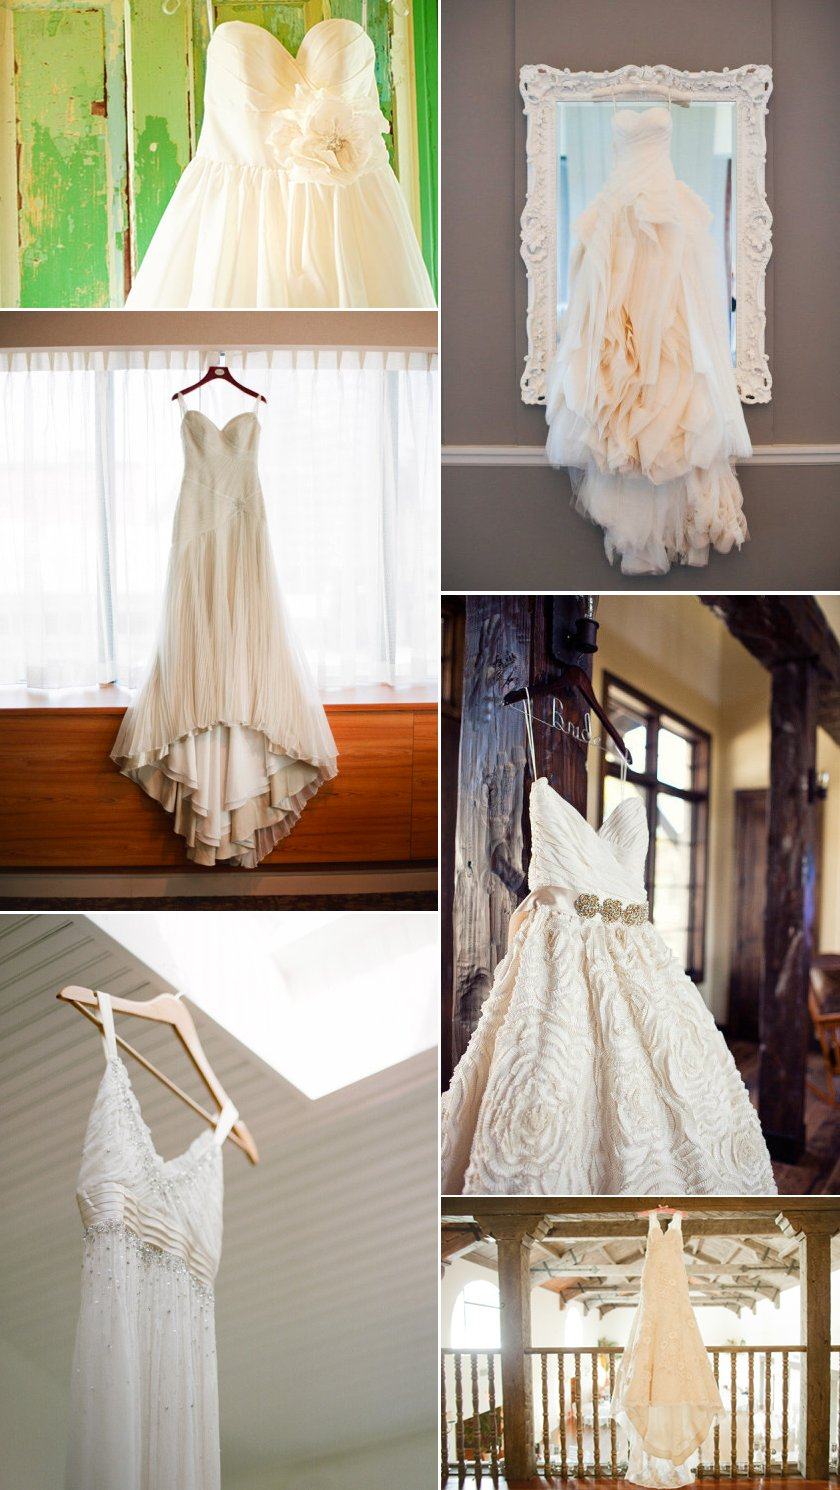 Wedding-photography-must-have-detail-shots-for-brides-hanging-wedding-dress-2.full